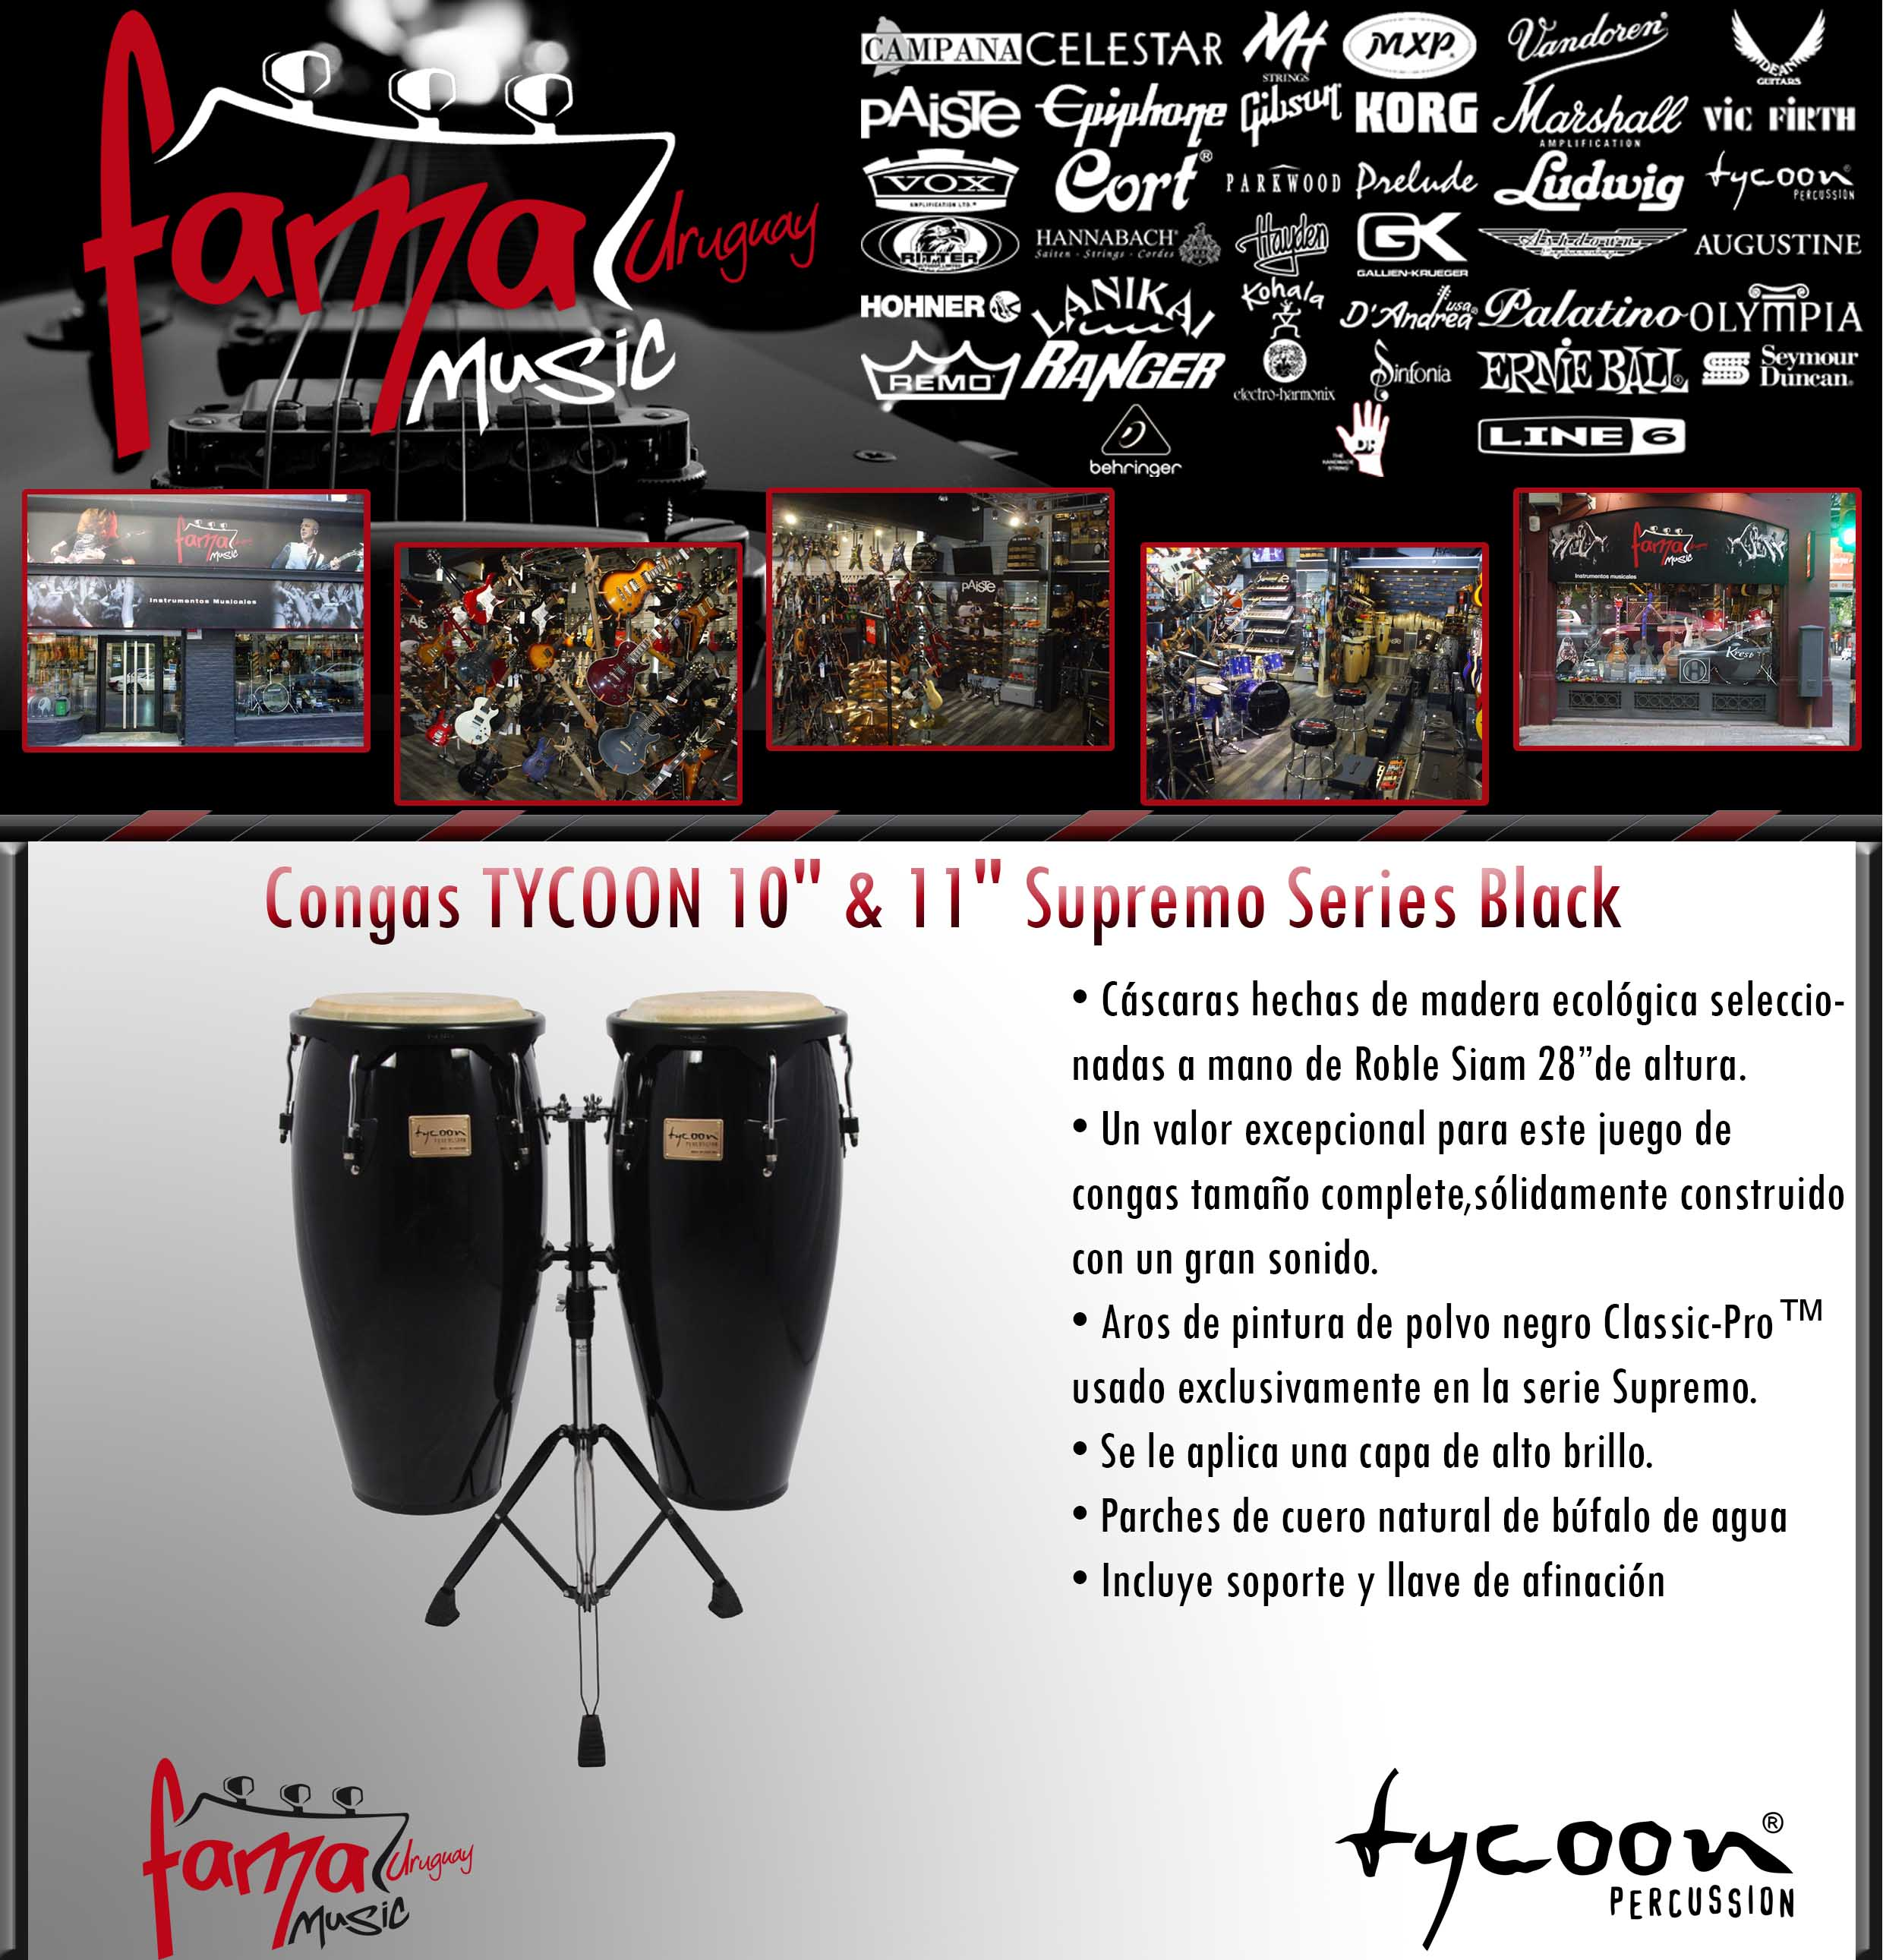 Congas TYCOON 1011 Supremo Series Black